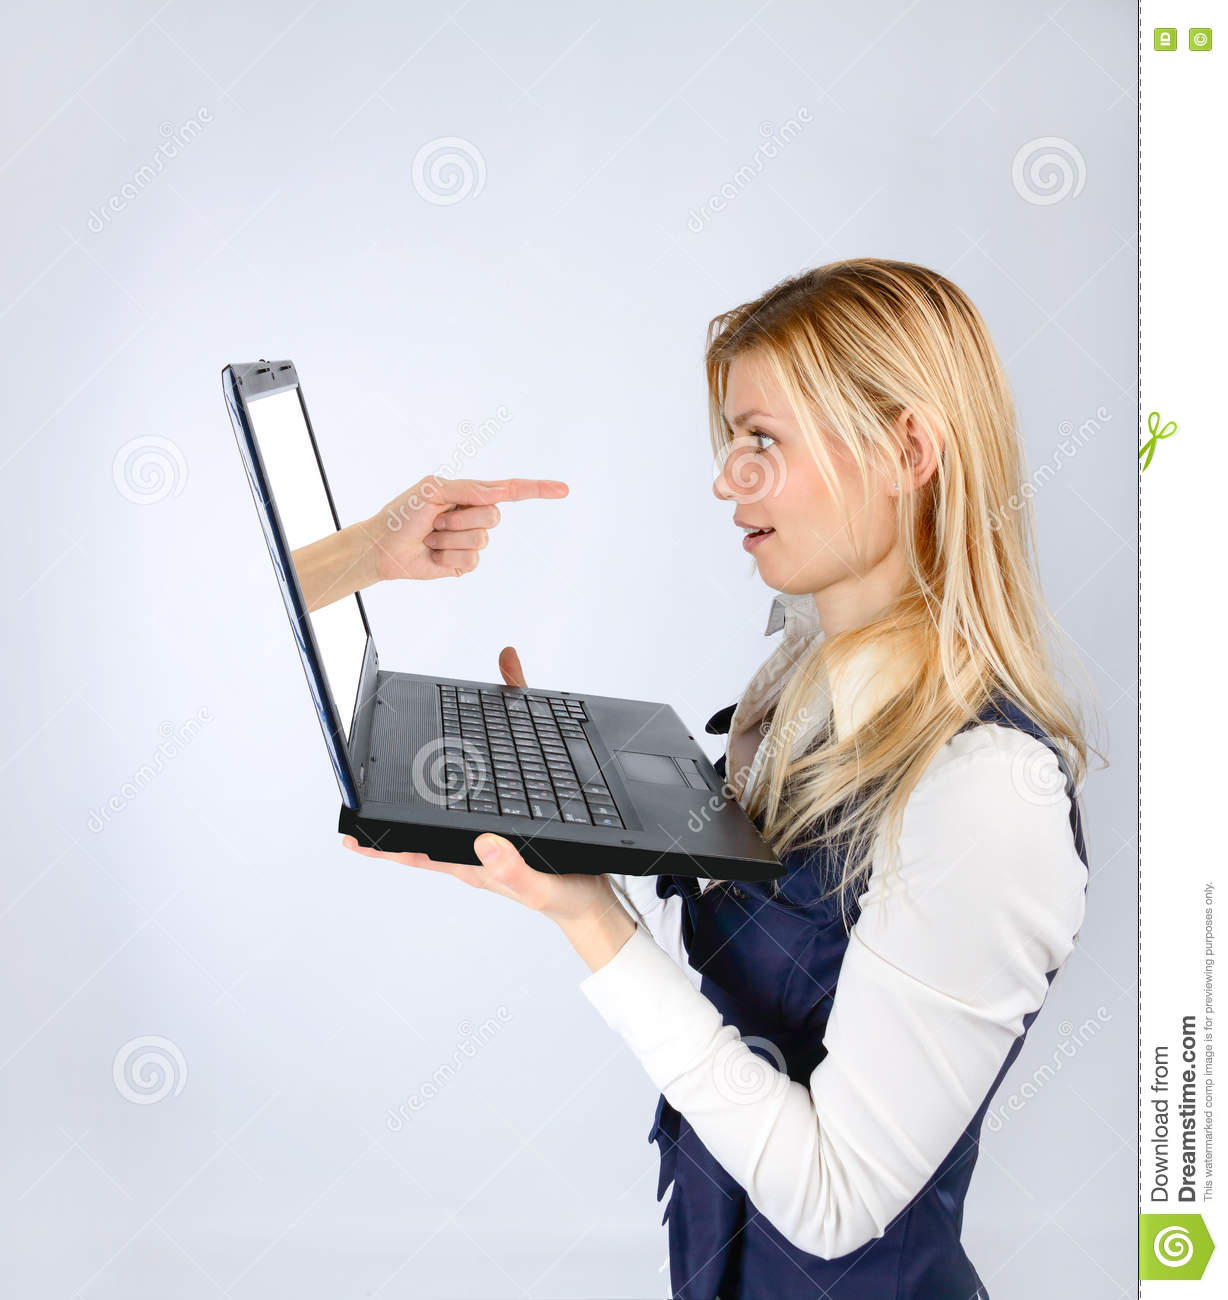 Surprised woman holding a laptop and hand